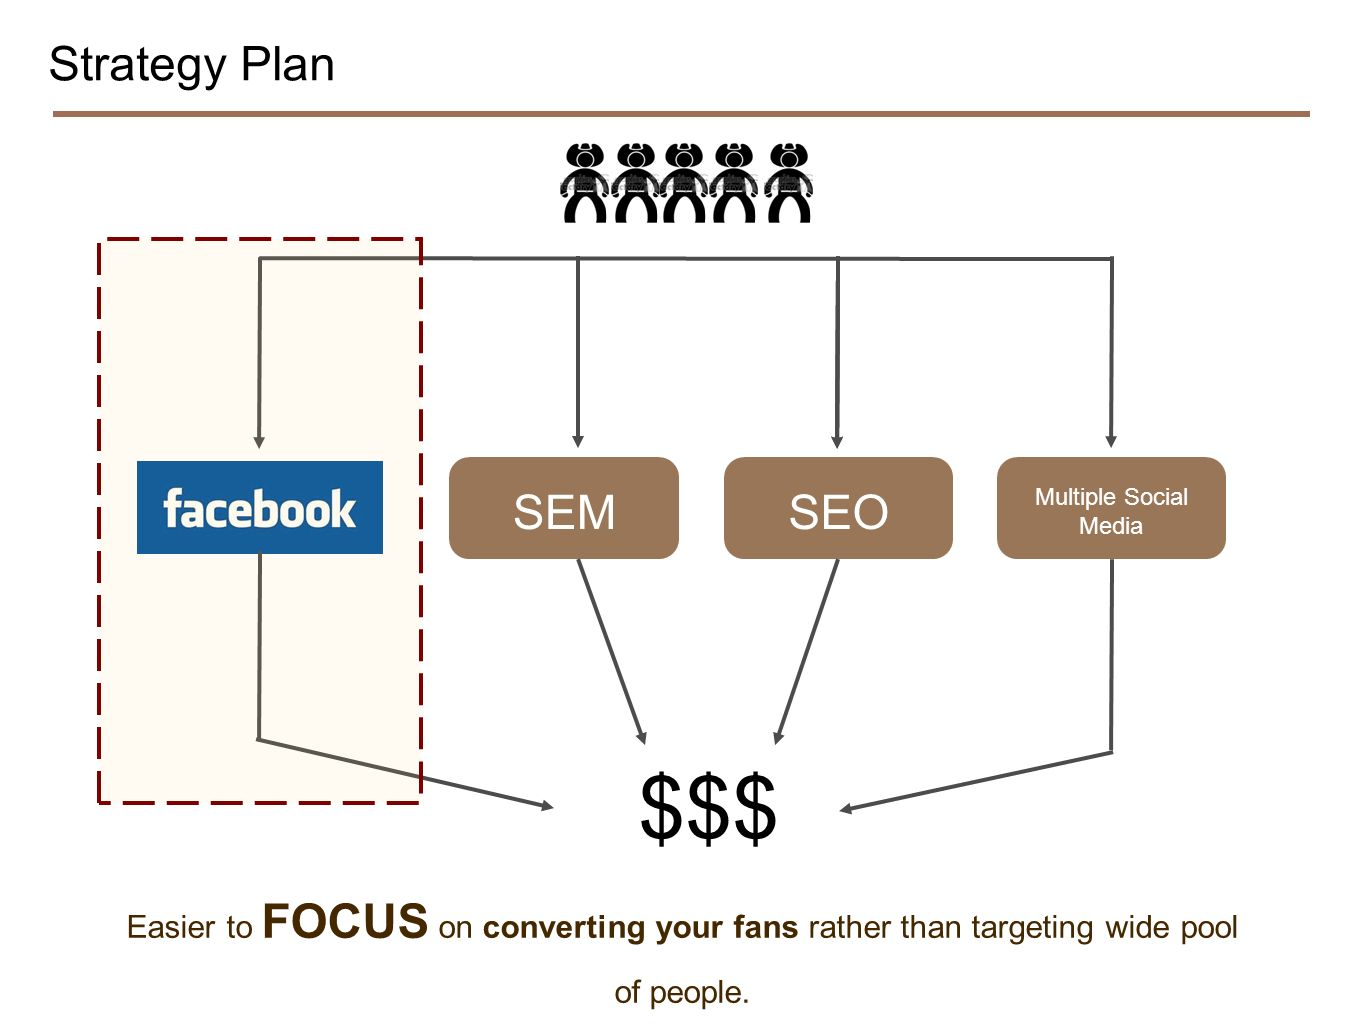 Strategy Plan Easier to FOCUS on converting your fans rather than targeting wide pool of people. $$$ SEM Multiple Social Media SEO